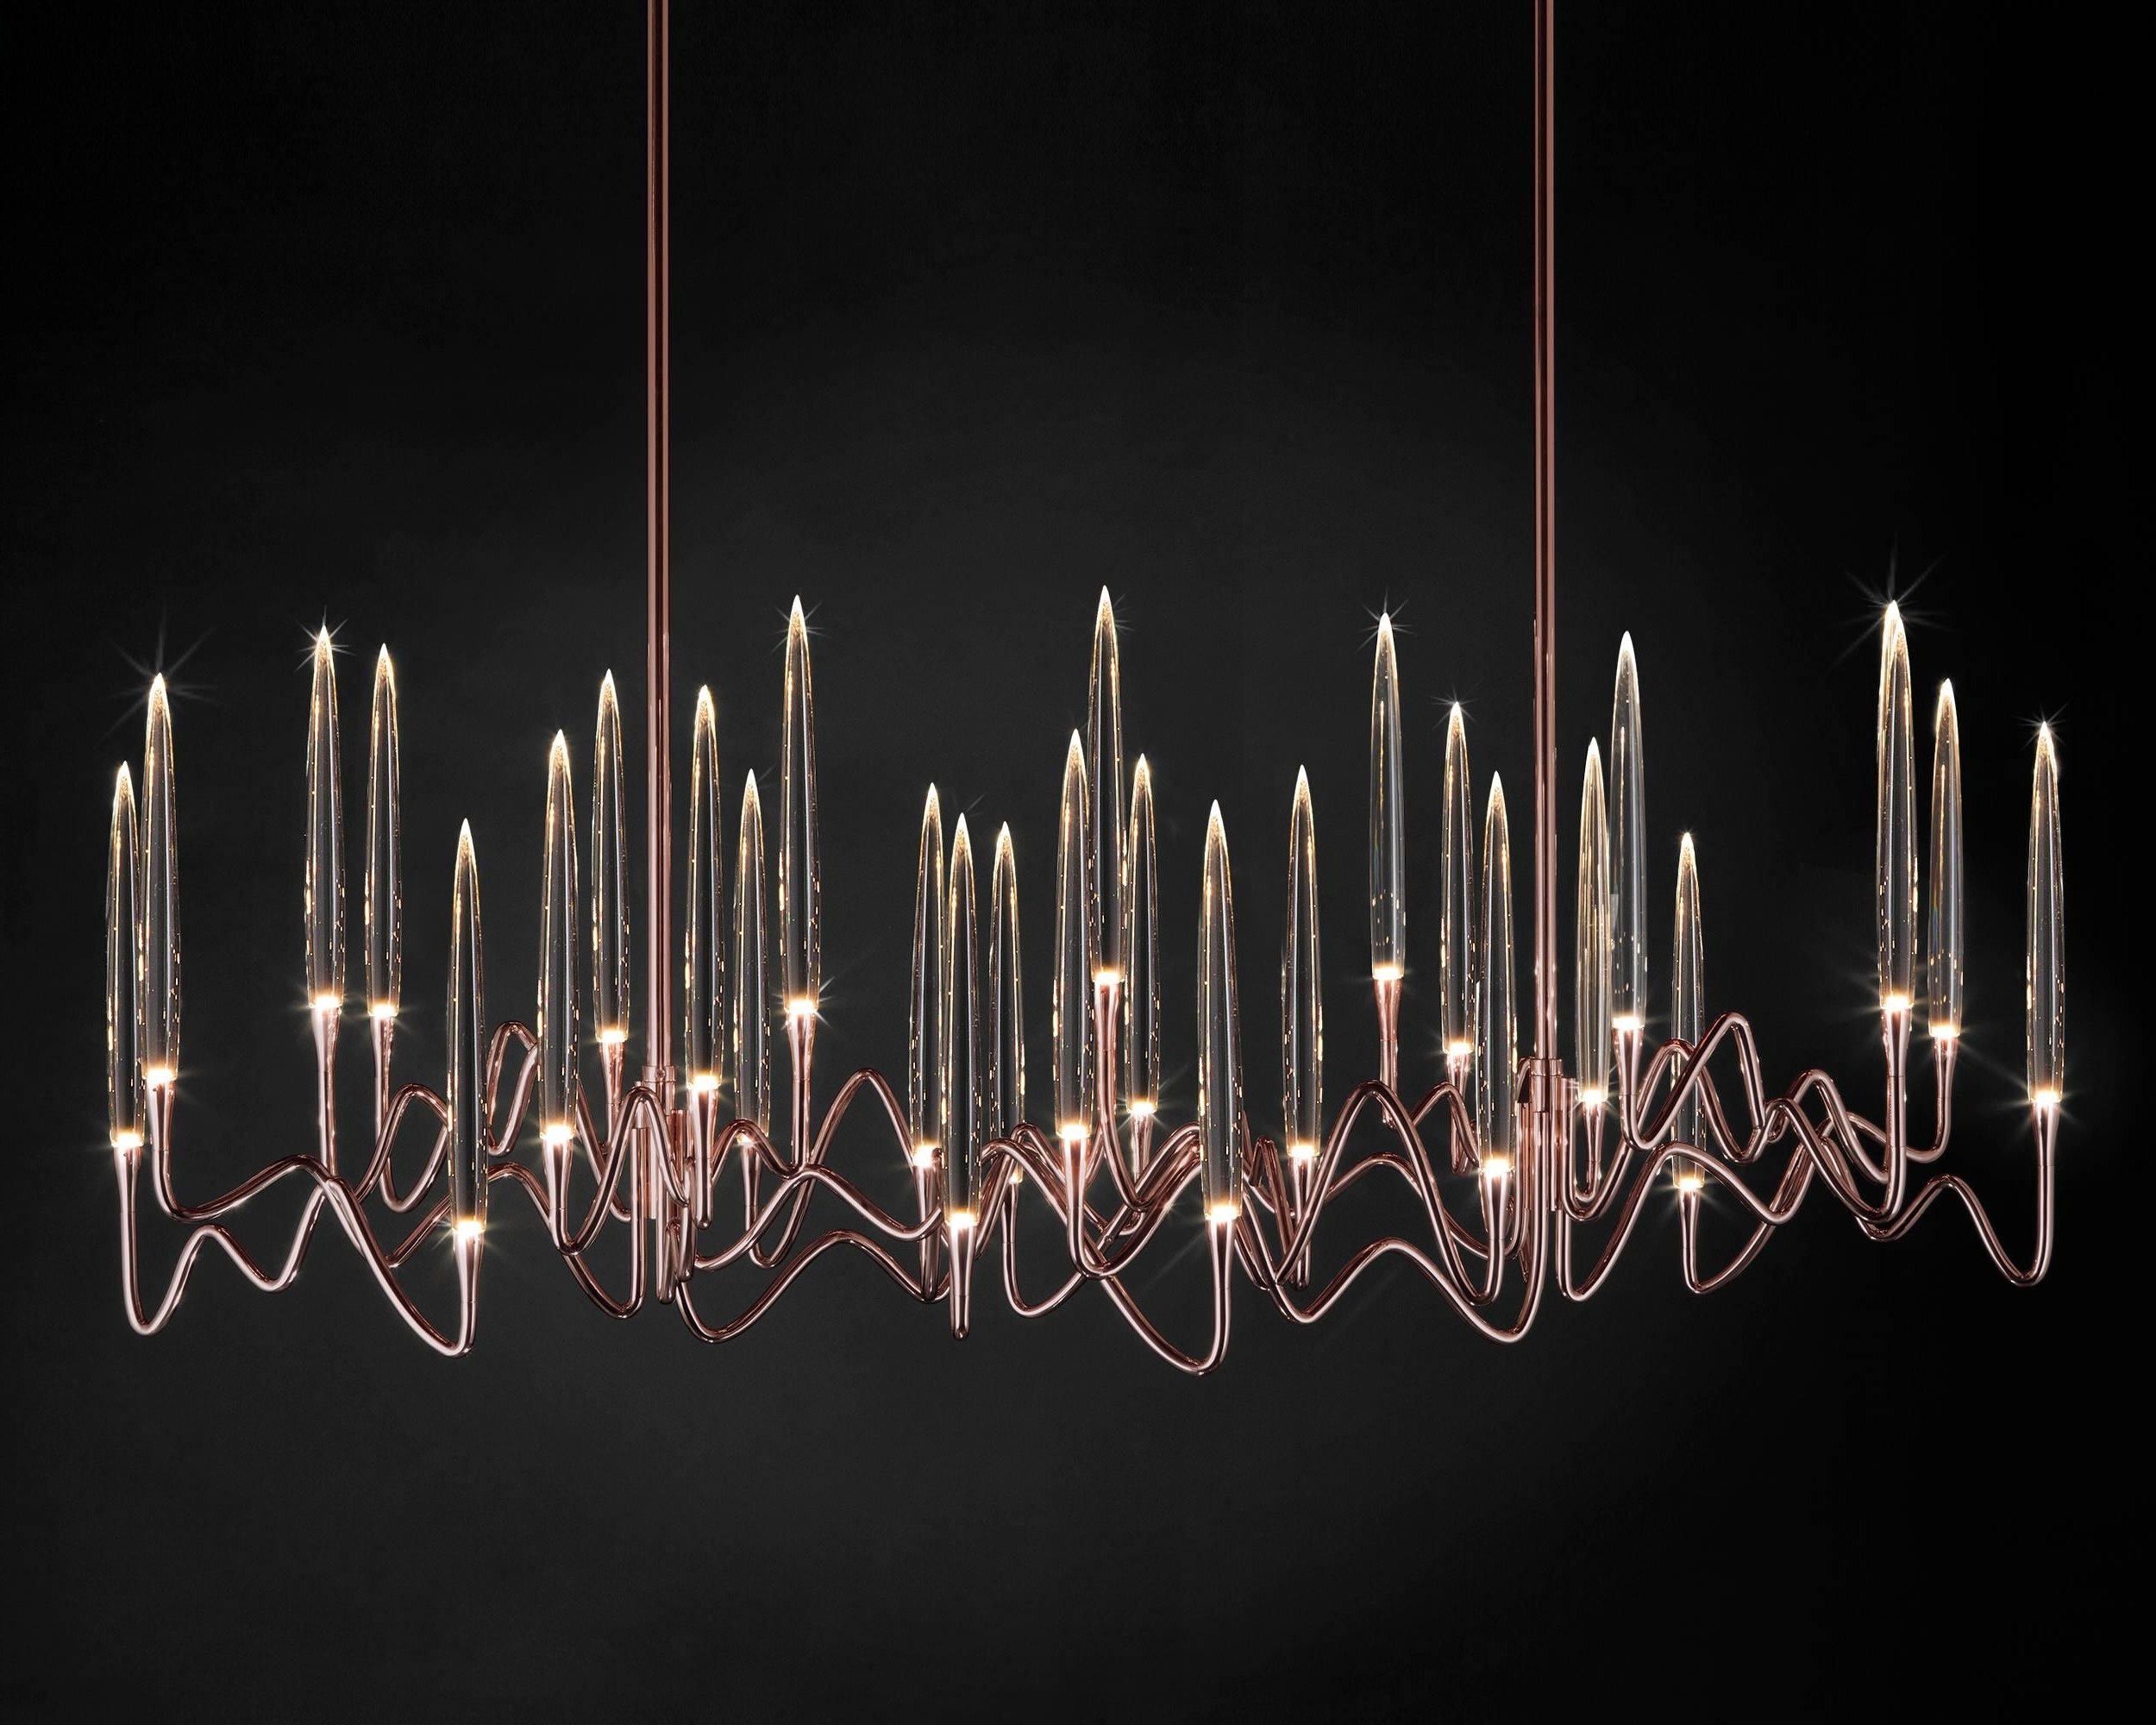 "Preferred Long Chandelier Lighting inside Il Pezzo 3 Long Chandelier"" Made In Italy Led Lamp Made Of Brass And"